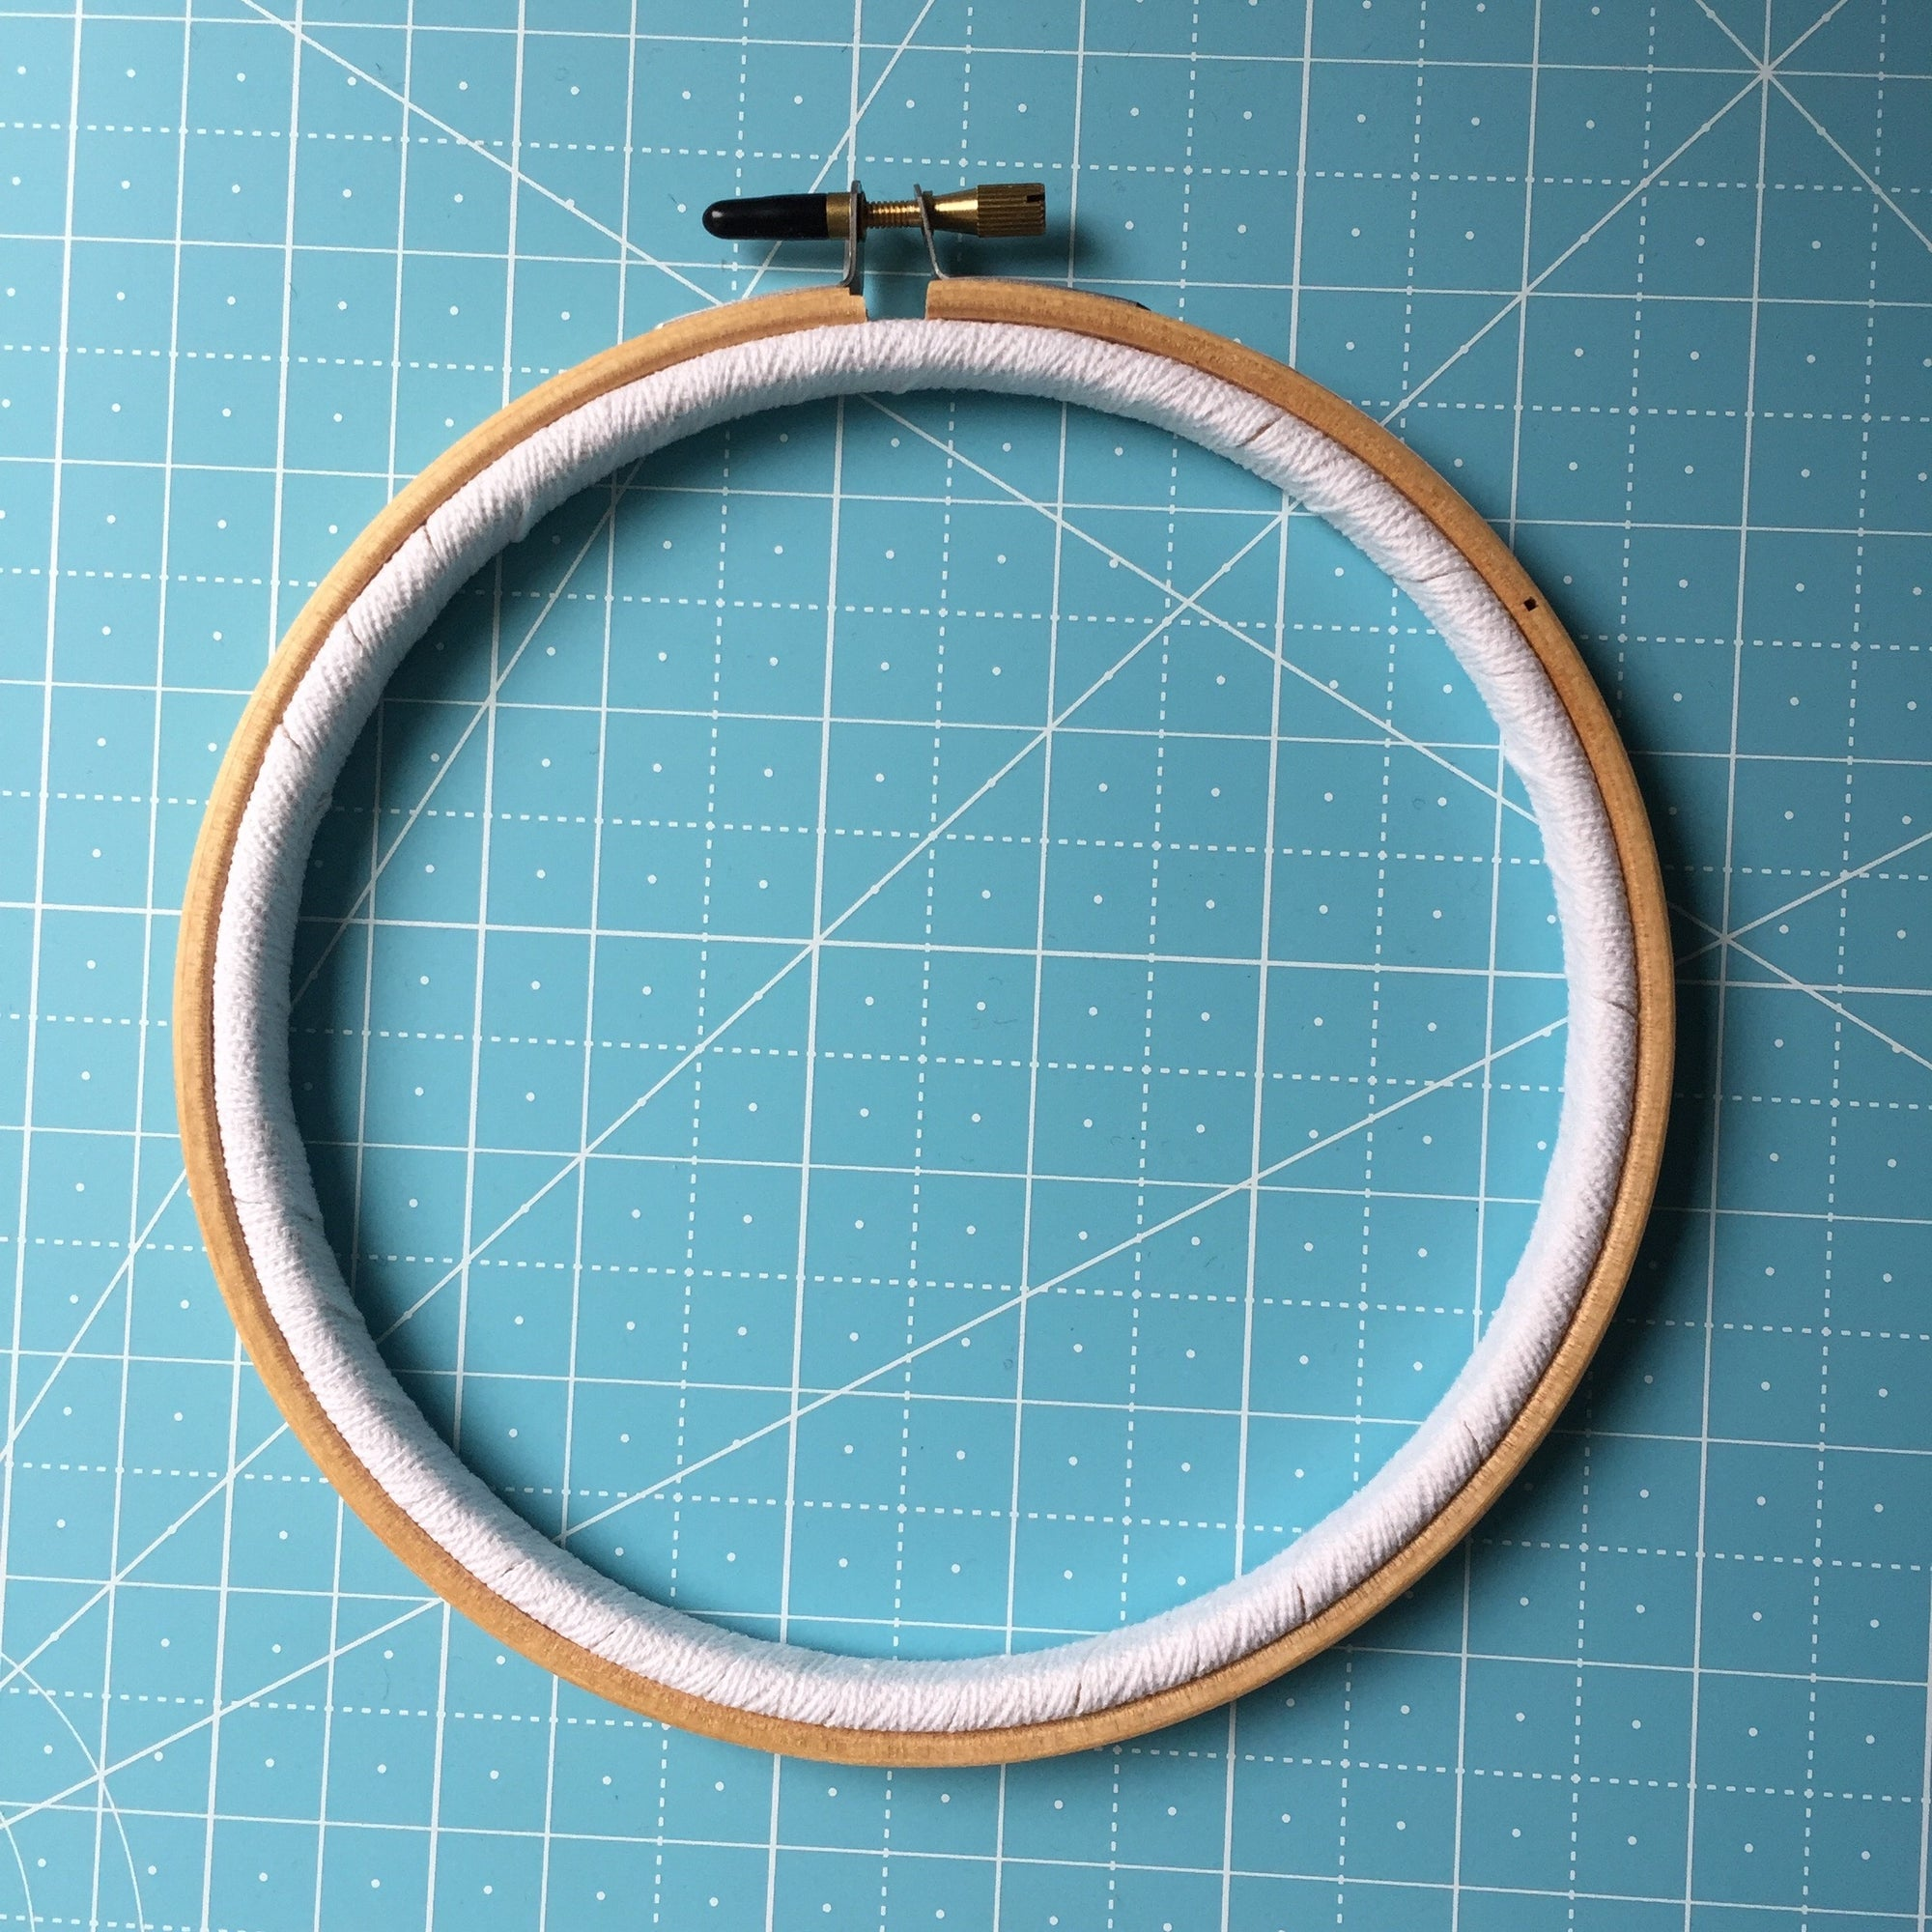 Improve Fabric Tension by Binding Your Embroidery Hoop